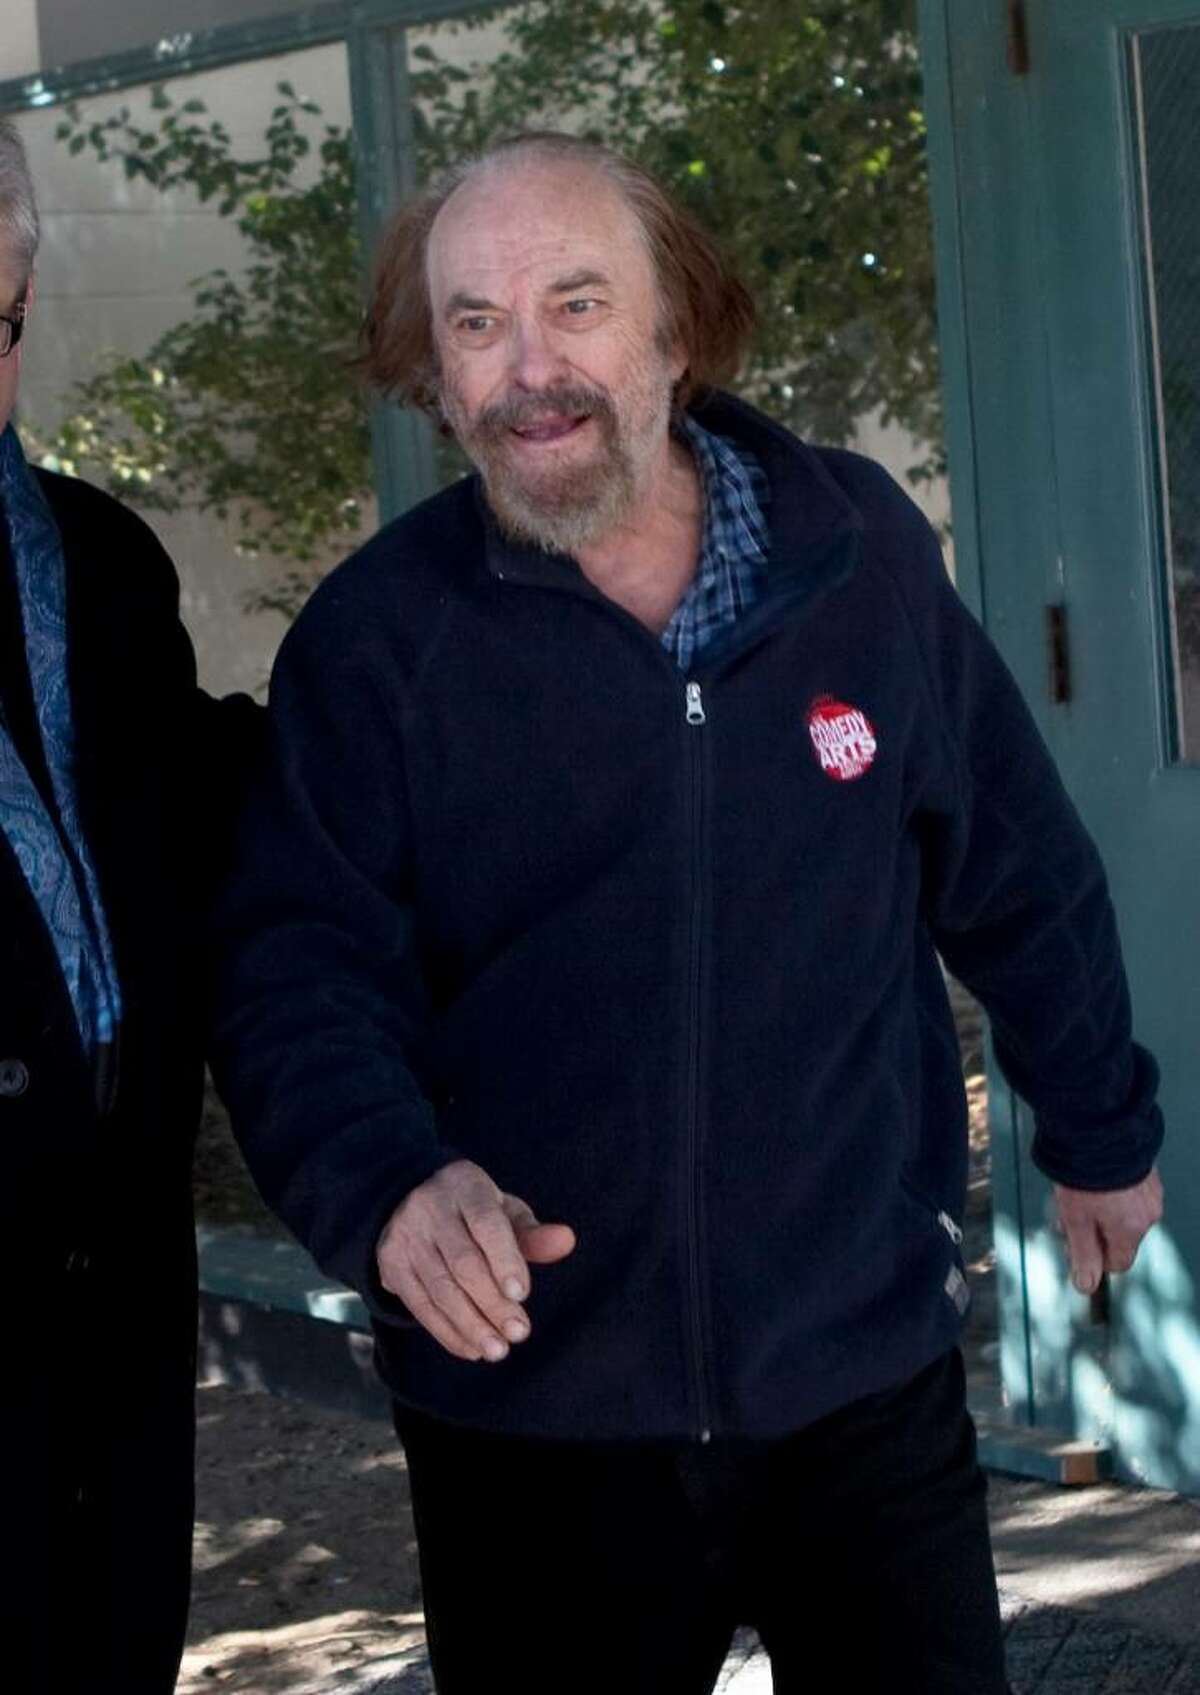 BANTAM, CT - FEBRUARY 1: Actor Rip Torn exits Bantam Superior Court February 1, 2010 in Bantam, Connecticut. Torn was arraigned on charges of criminal trespass, carrying a gun without a permit, carrying a gun while intoxicated, burglary and criminal mischief and was released on a $100,000 bond. Police responding to an alarm found Torn in the Litchfield Bancorp branch's lobby Friday night after he reportedly broke into the bank though a window while intoxicated. (Photo by Wendy Carlson/Getty Images) *** Local Caption *** Rip Torn